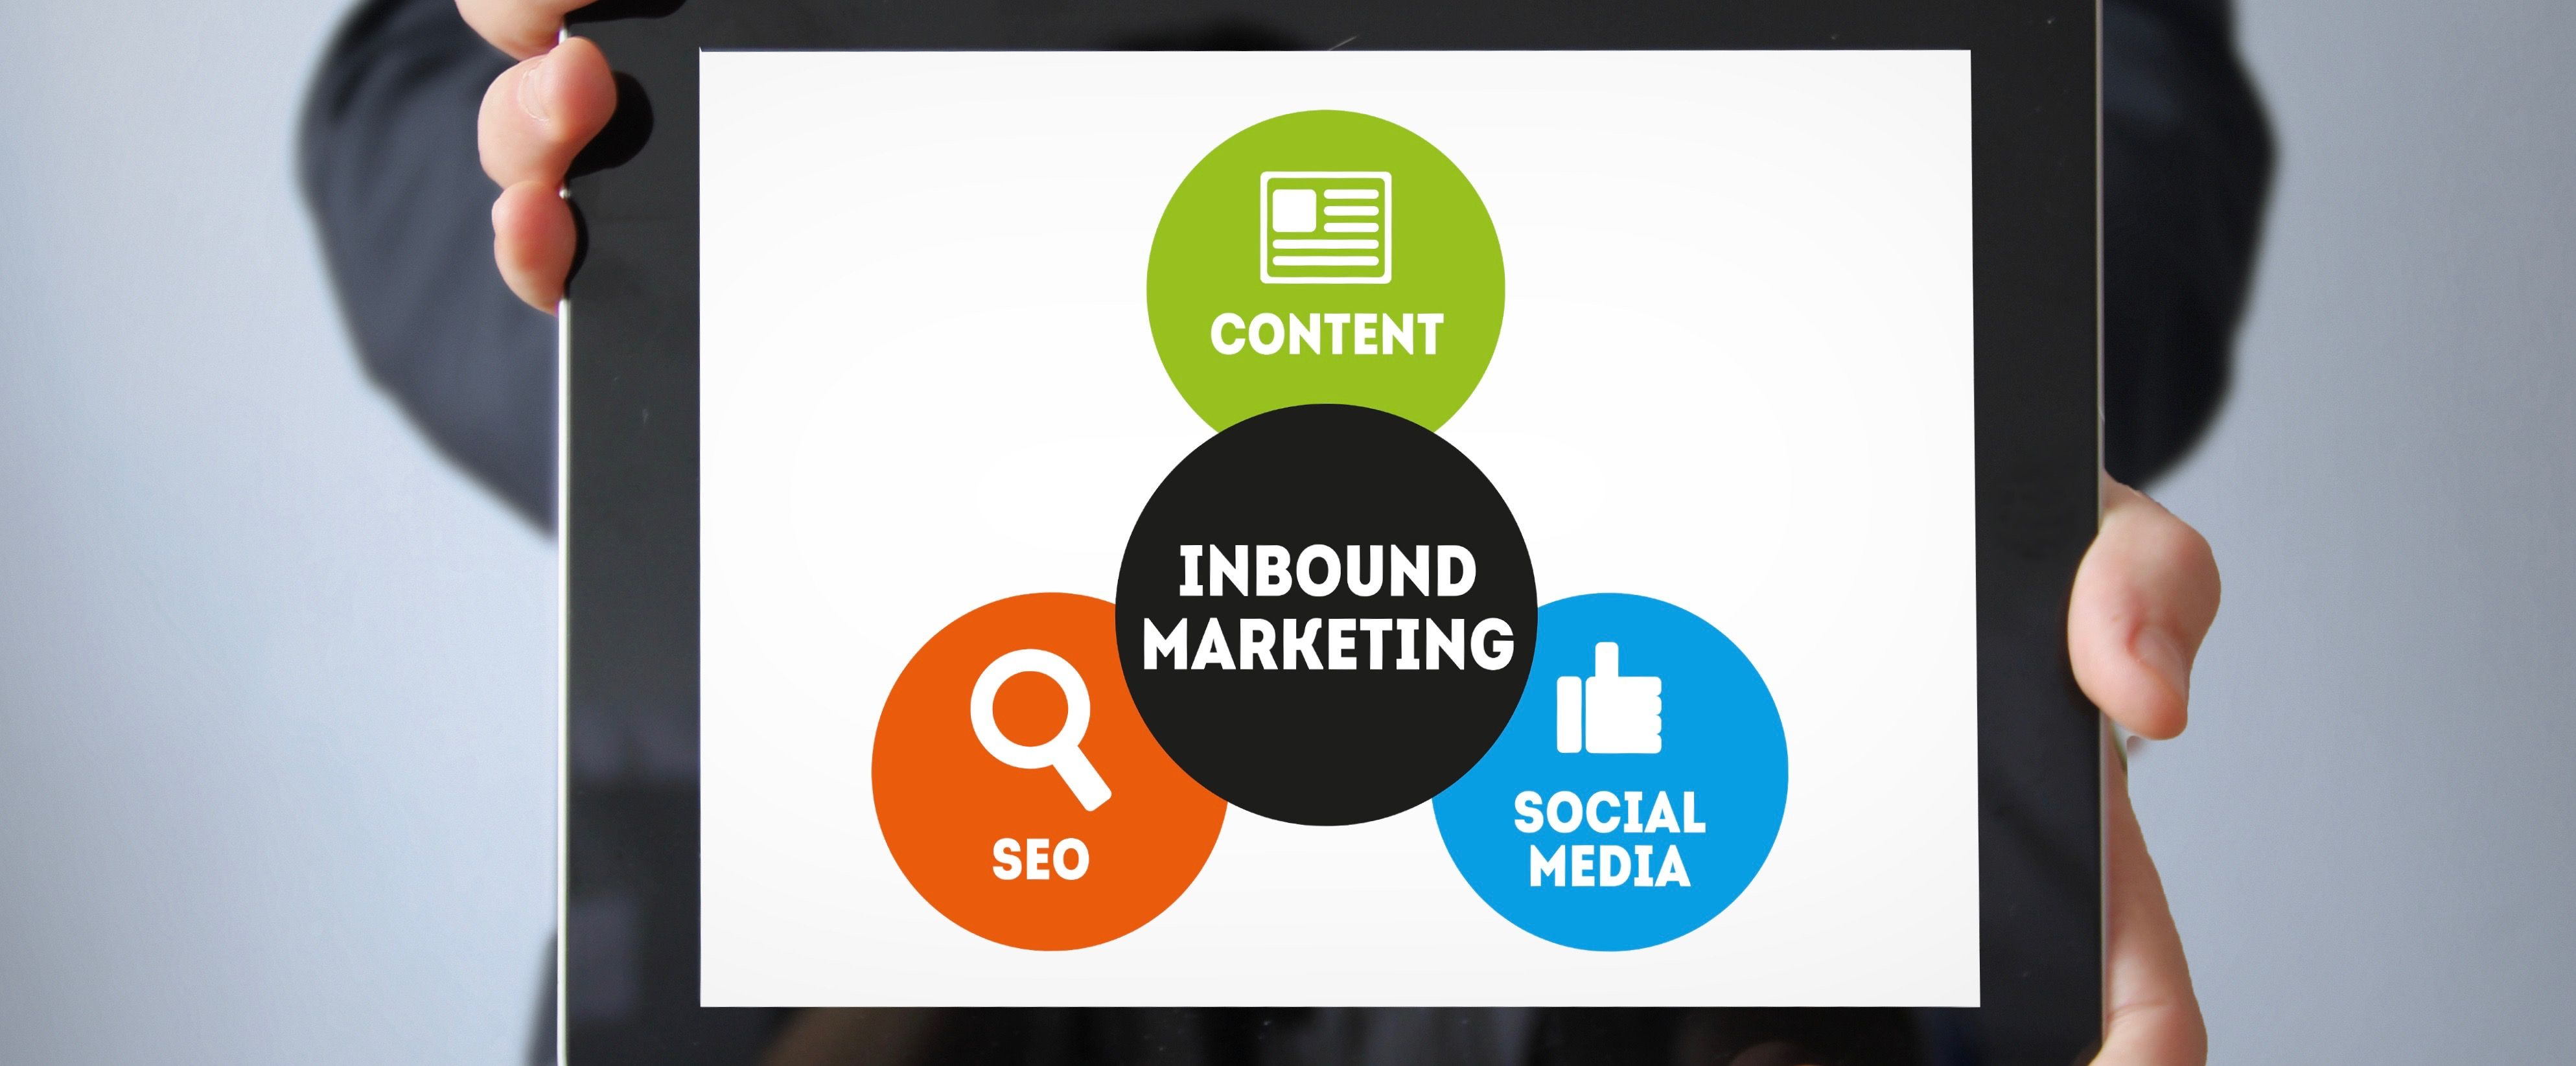 inboundmarketer100days-compressor.jpg